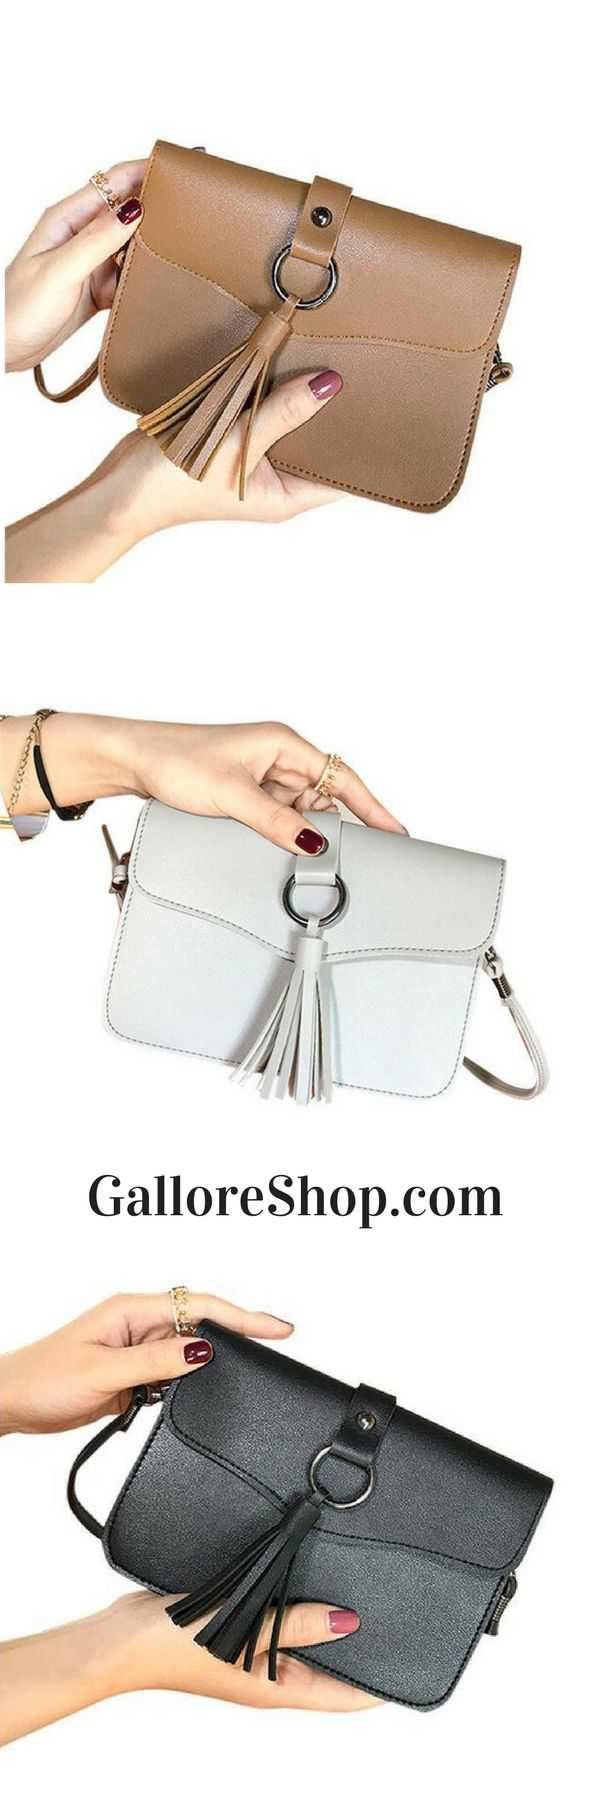 Grab you a cute leather purse that's great for ANY occasion! leather purse   leather purses and bags   leather purse pattern   leather purse diy   leather purse western   Leather Handbags & Purses Bags Luggage Hardware Accessories   Leather Purses   leather purses   Leather Purses   Leather purse & bag Obsession #leather #purses #handbags #new #trends #onlineshop #discount